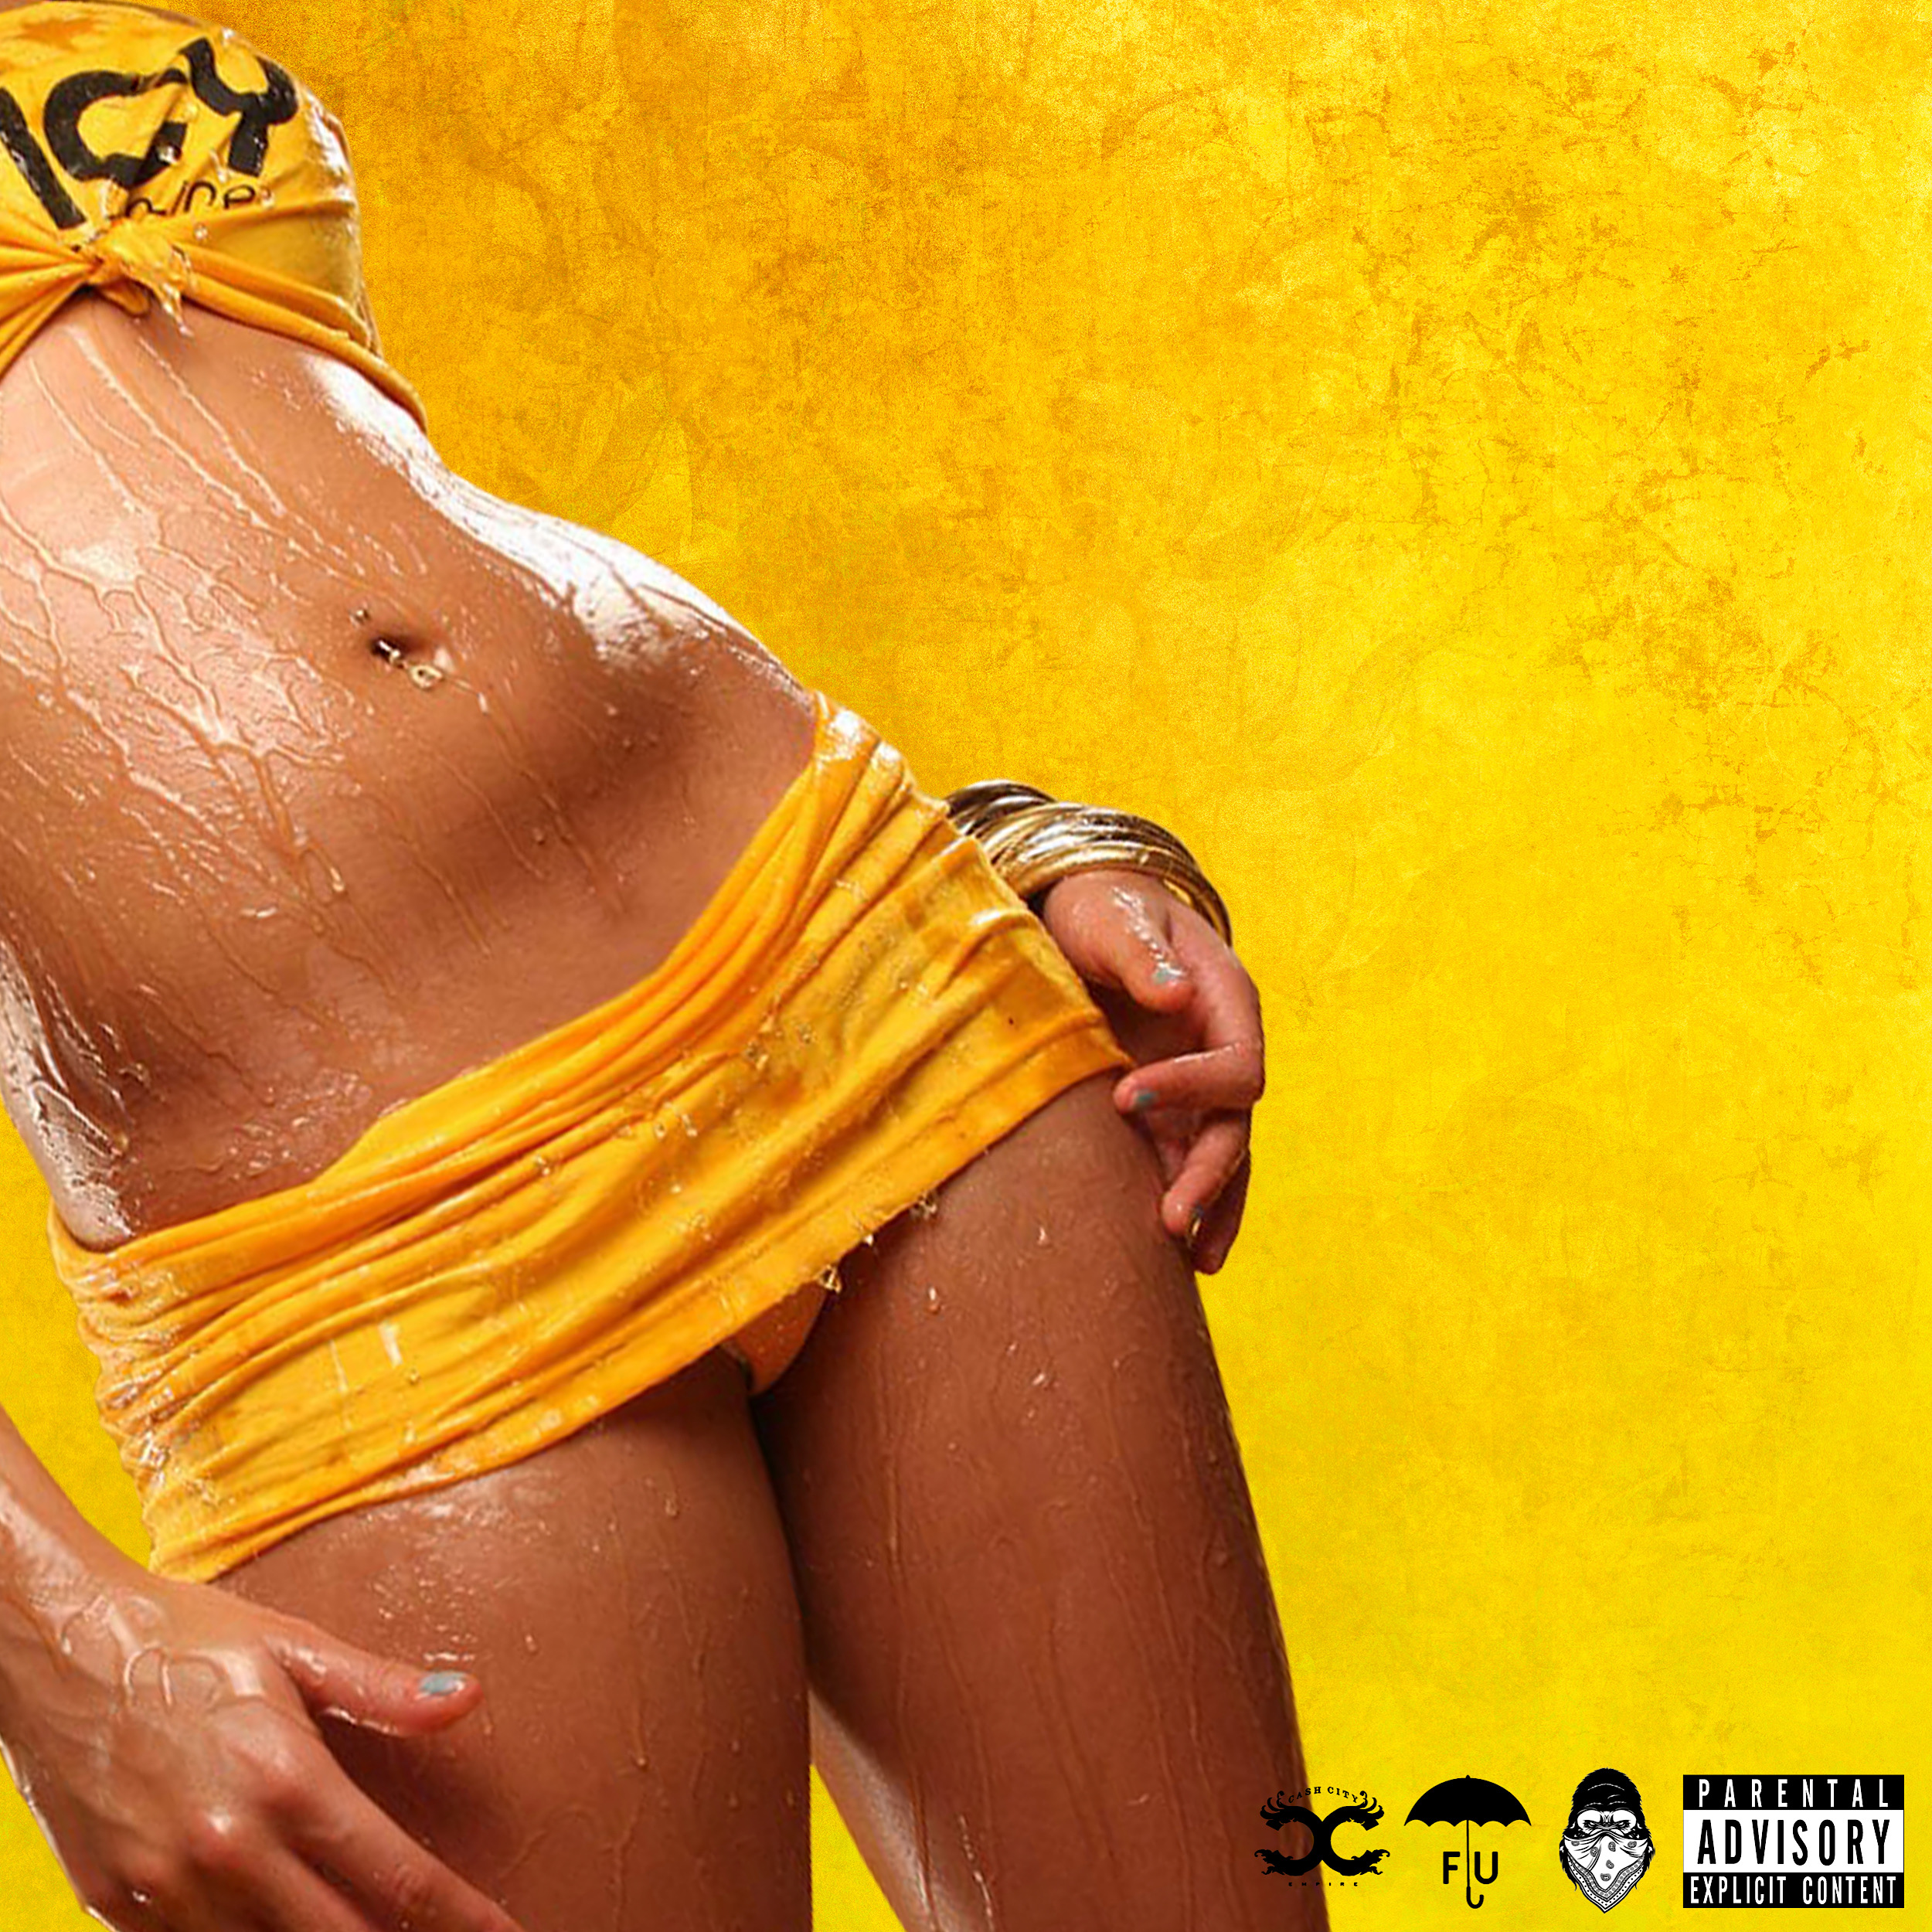 J-HAZE Has The Remedy For 'Toxic' Relationships